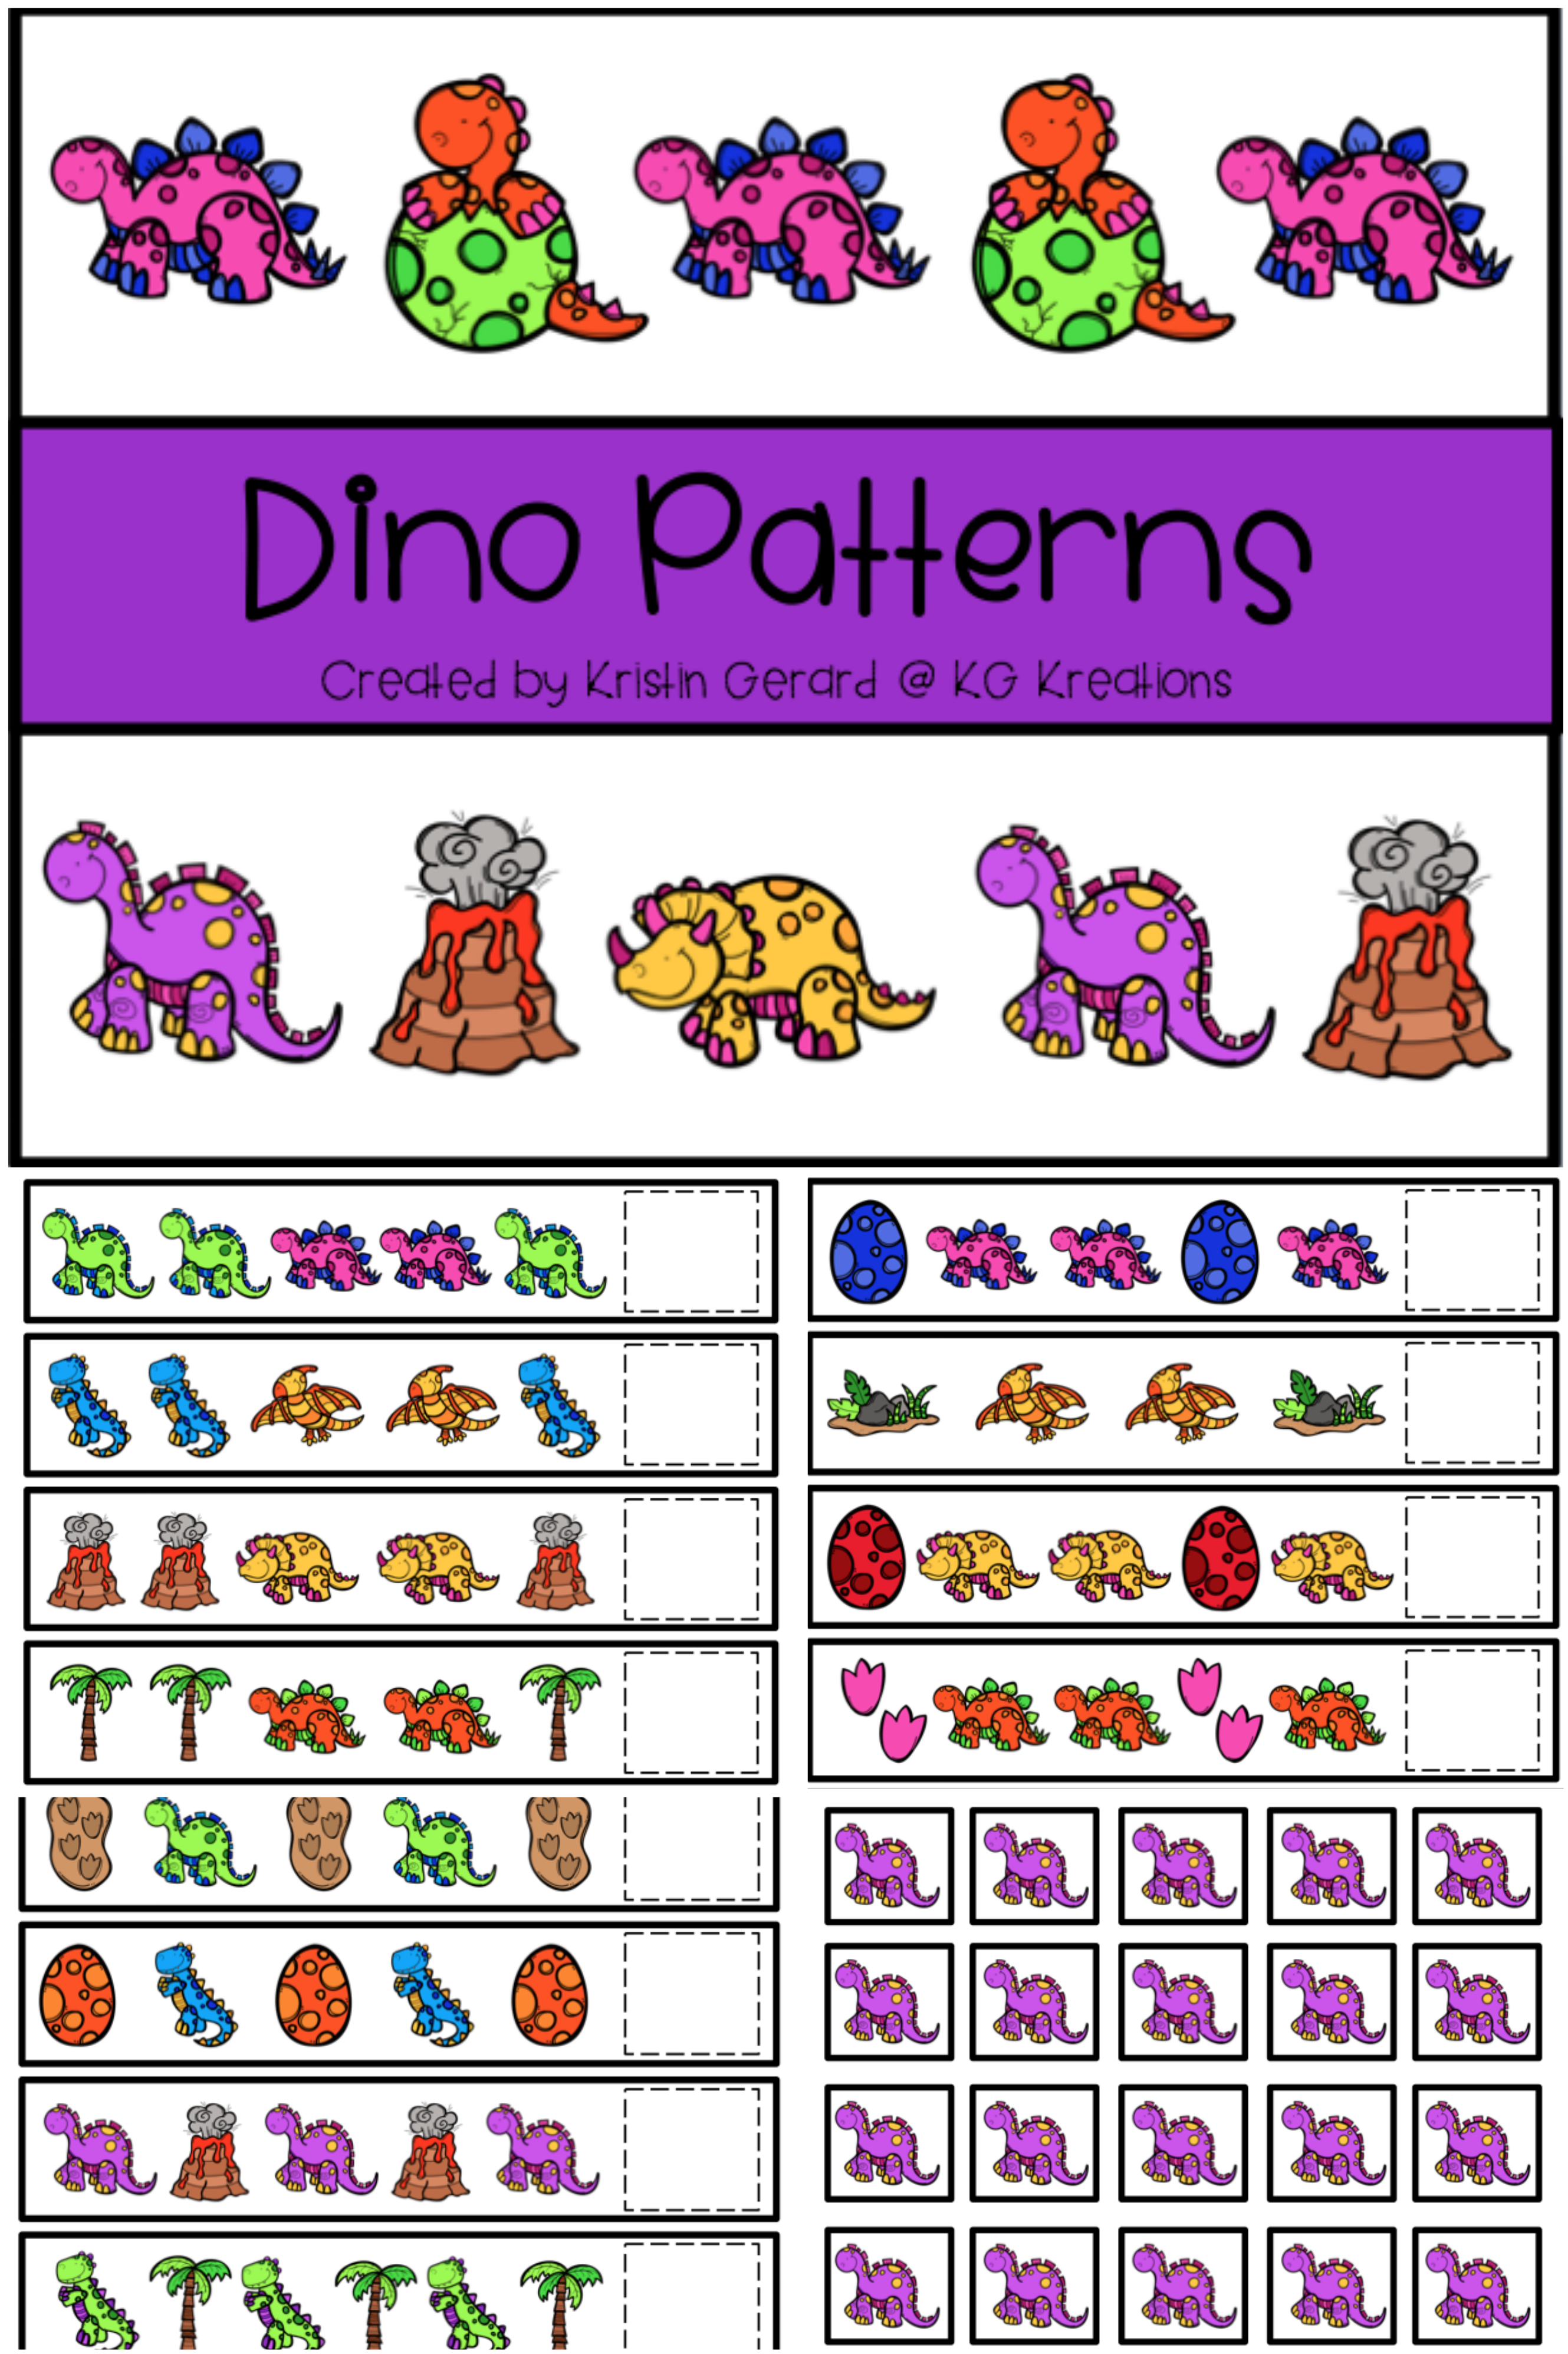 Dinosaur Pattern Cards With Images